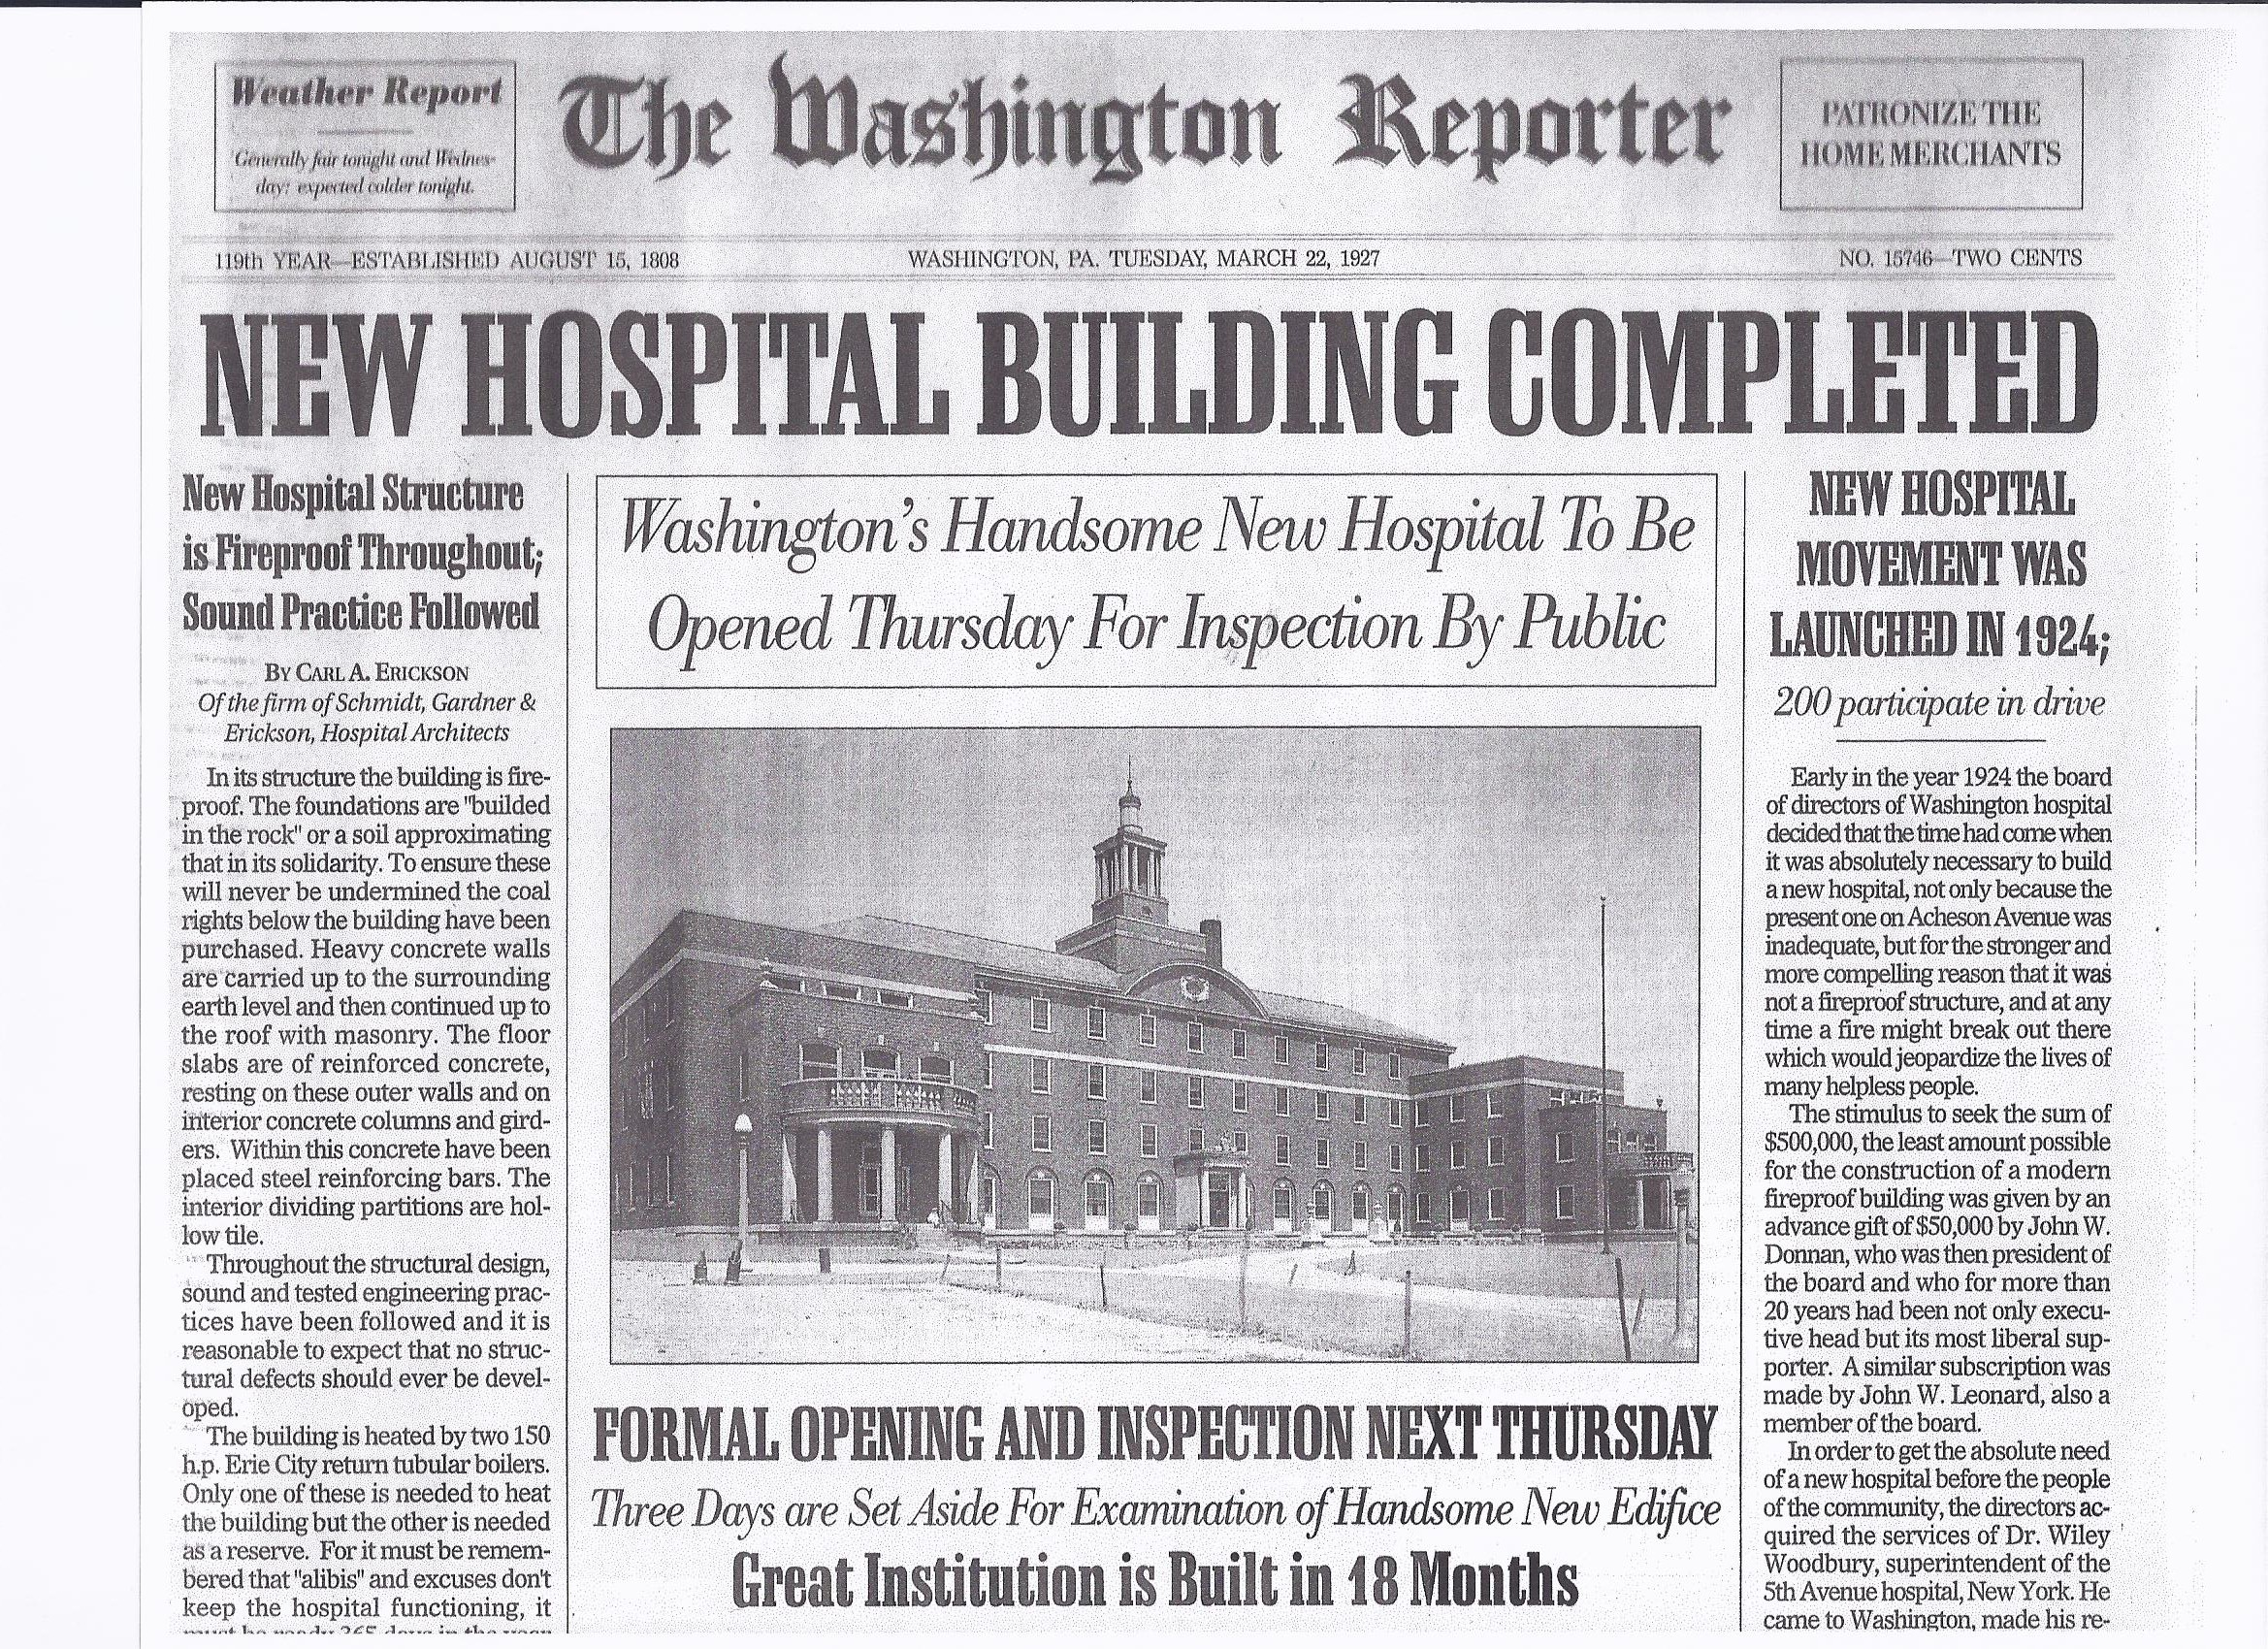 Newspaper from 1927 announcing the completion of the new hospital